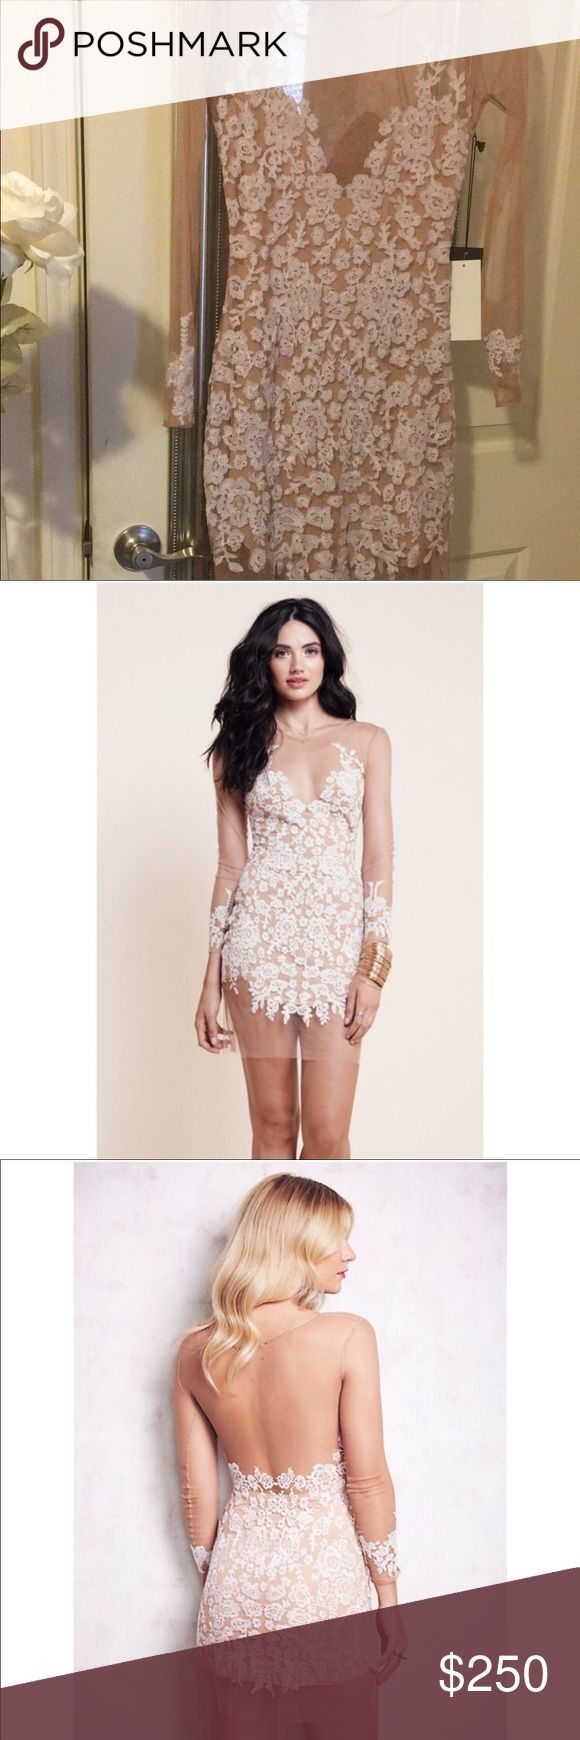 Nude Luau dress 😍 Sexy yet elegant nude dress 😍 I never got a chance to wear it, it was just hung in closet 😭💔 For Love and Lemons Dresses Midi